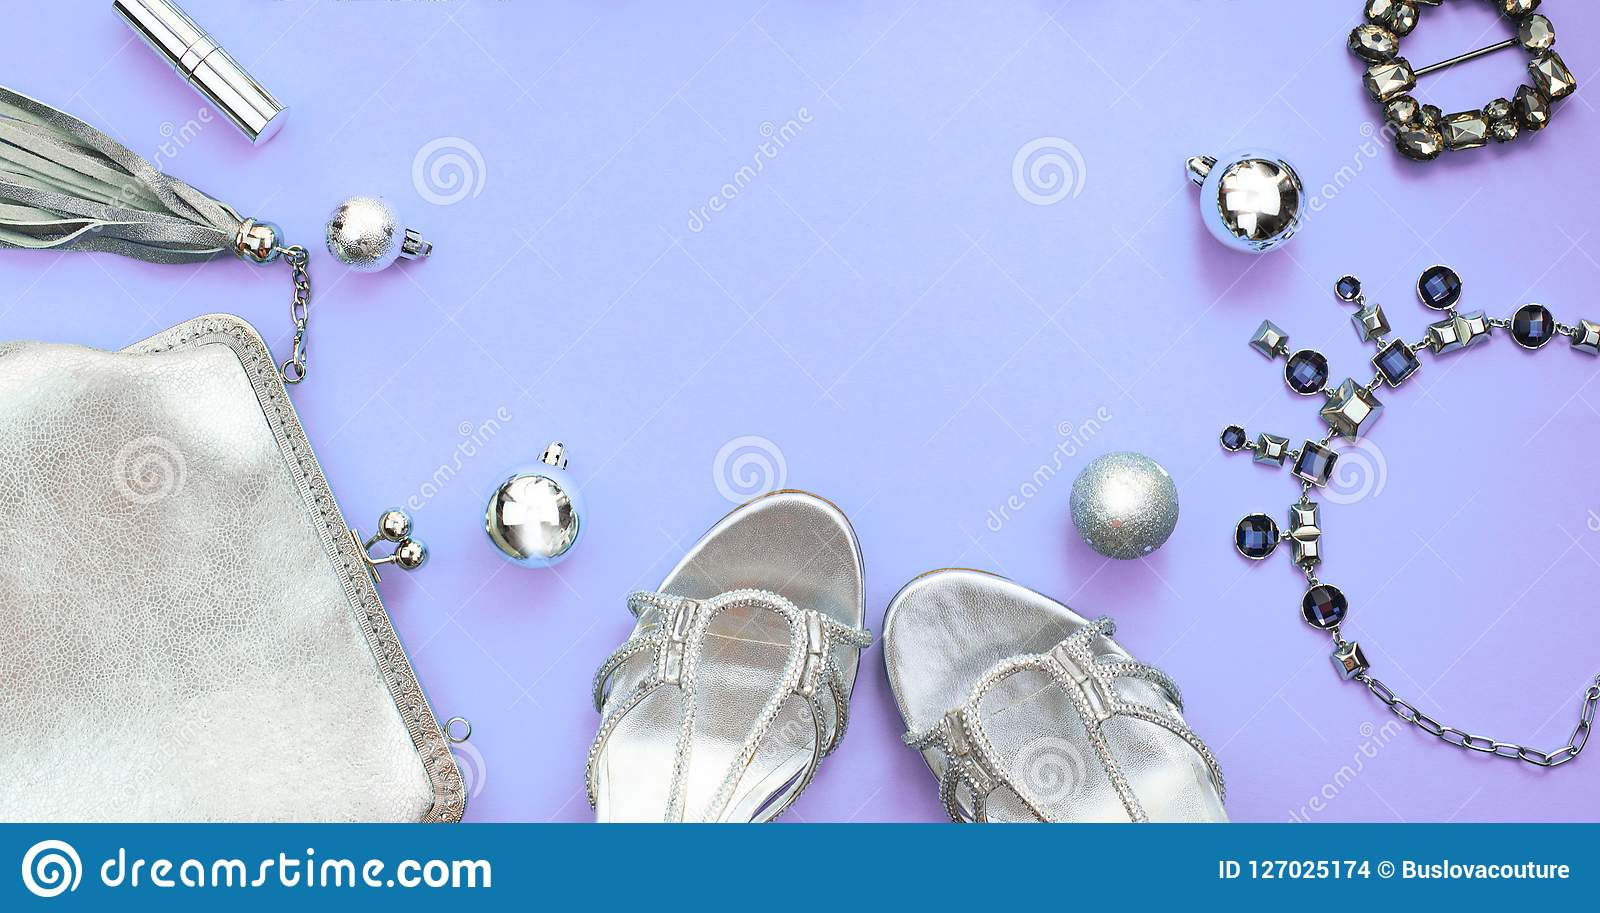 Banner Christmas Set Of Fashion Accessories Flat Lay Shoes Handbag Necklace Jewelry Silver Color On Purple Background Top View Cop Stock Photo Image Of Fashion Crystals 127025174